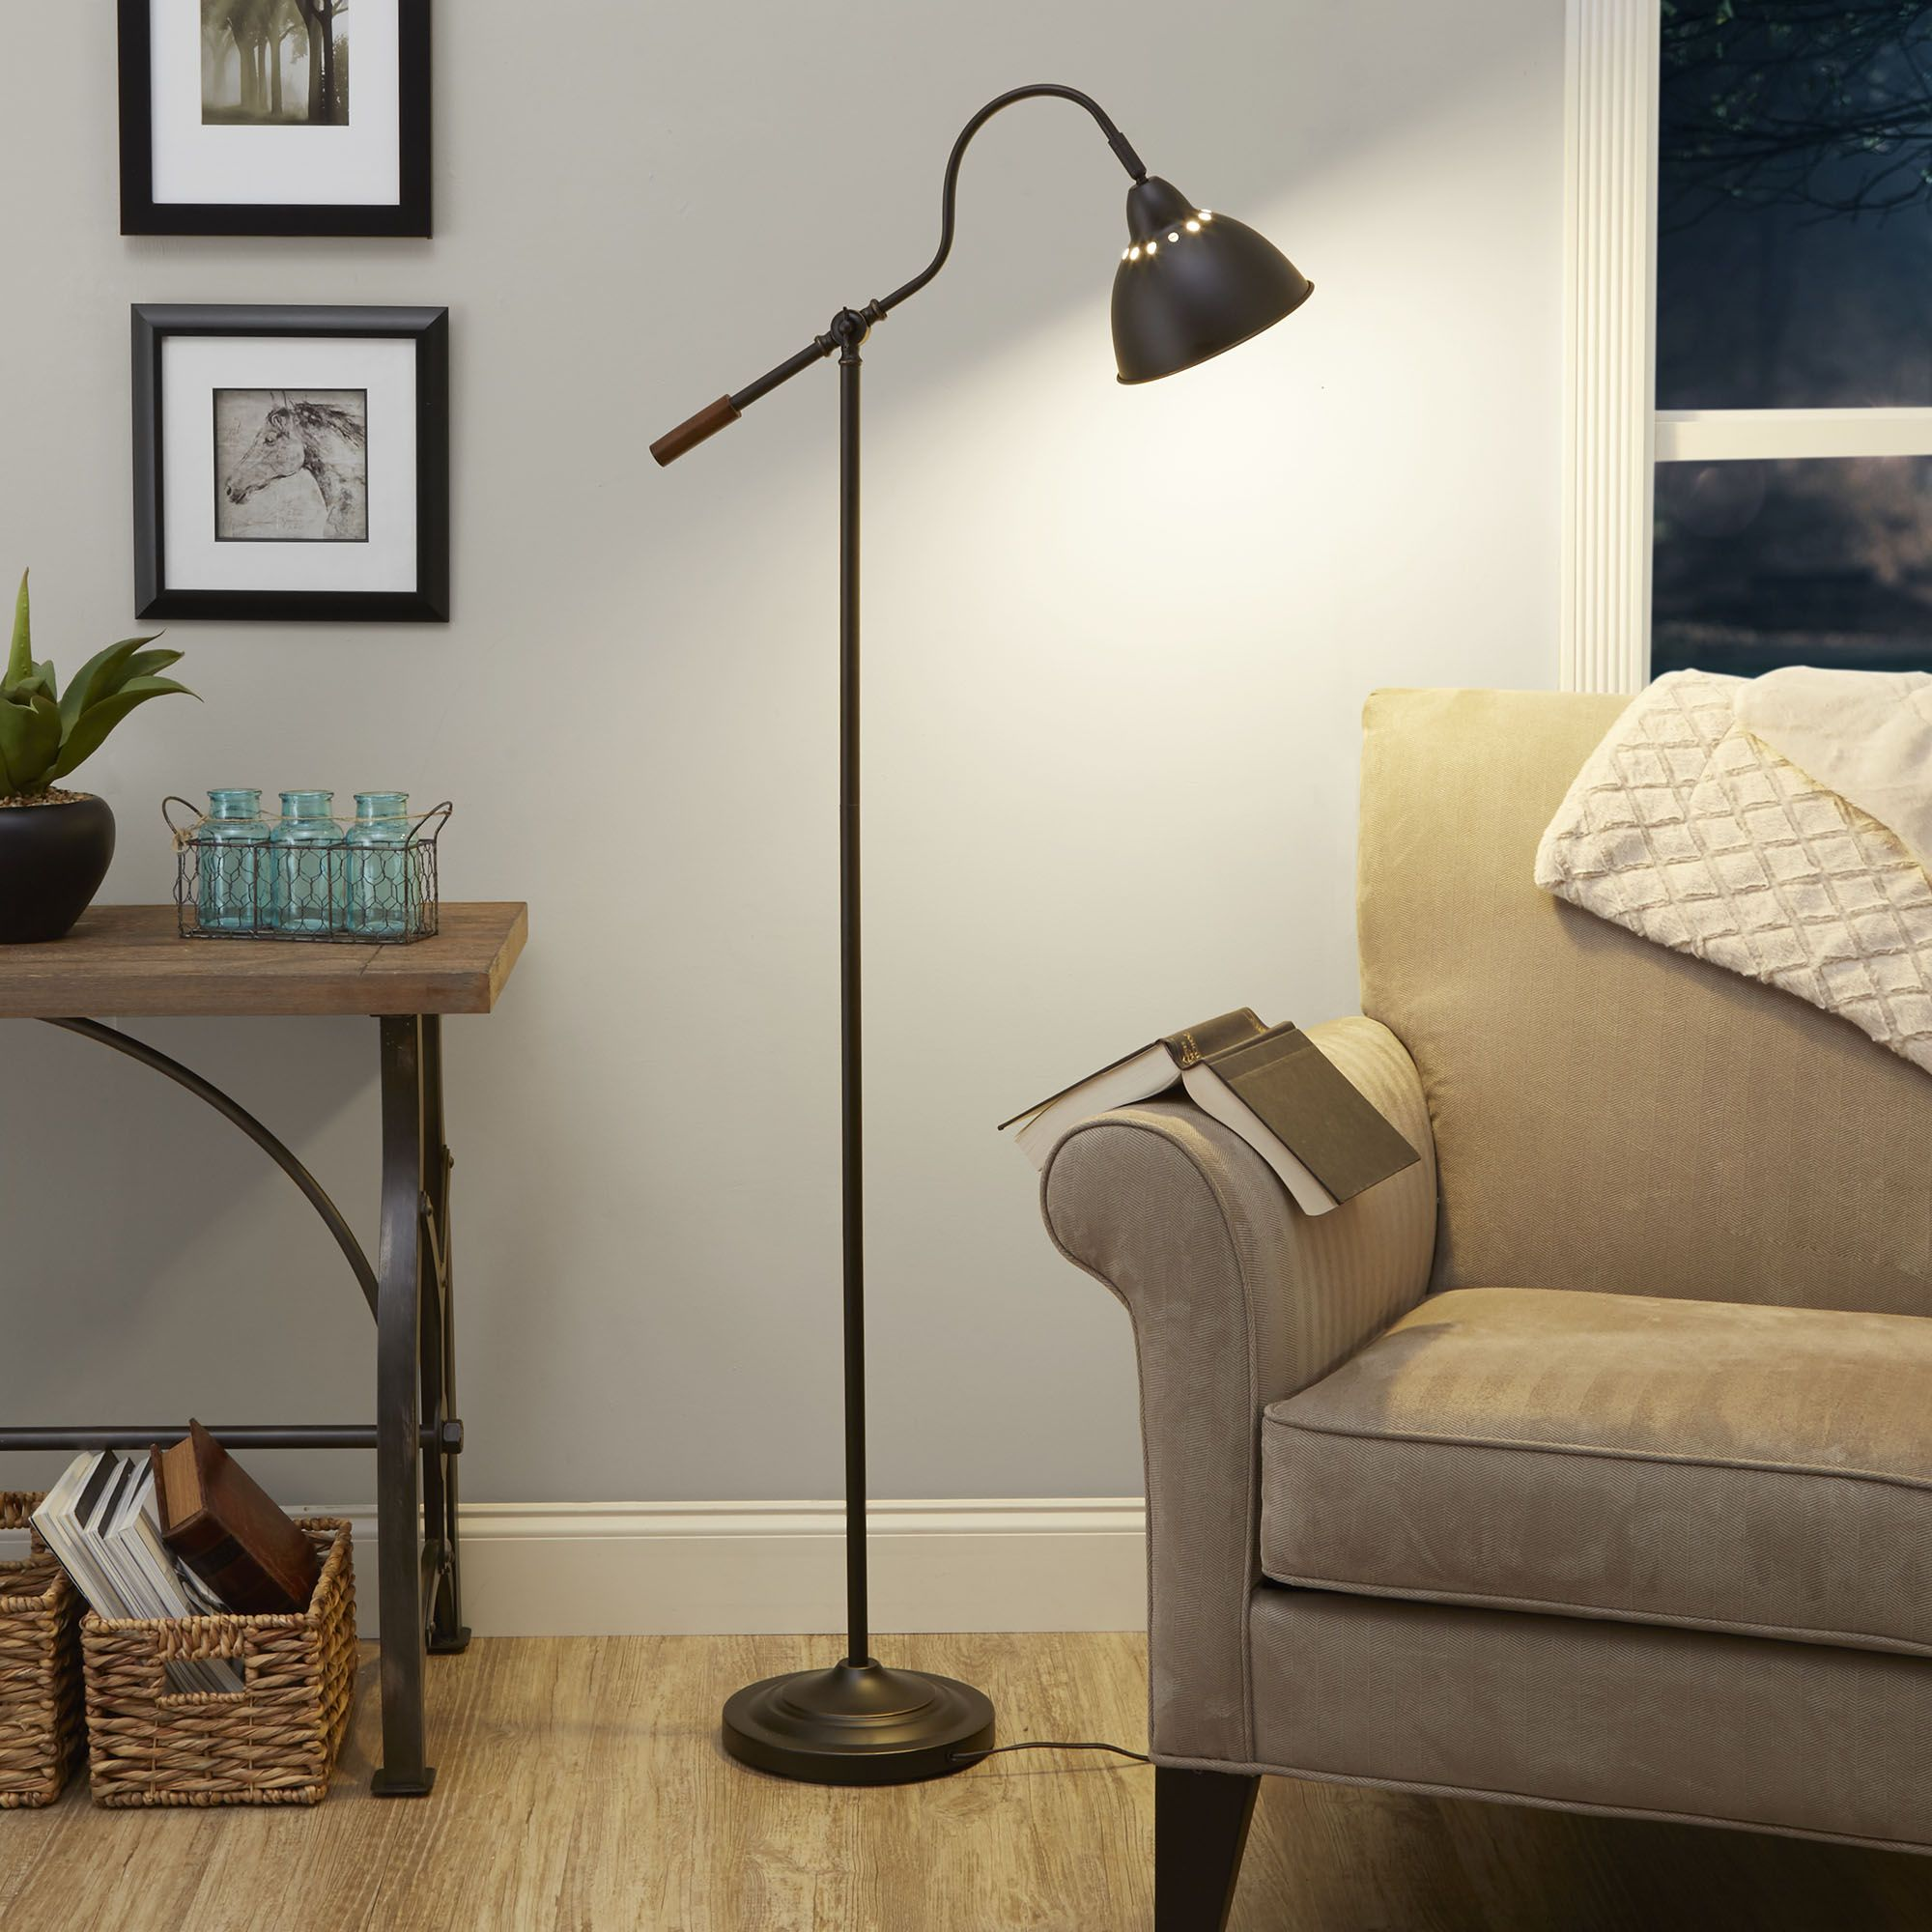 Better homes gardens 5 foot adjustable arm floor lamp oil rubbed bronze finish led bulb included walmart com